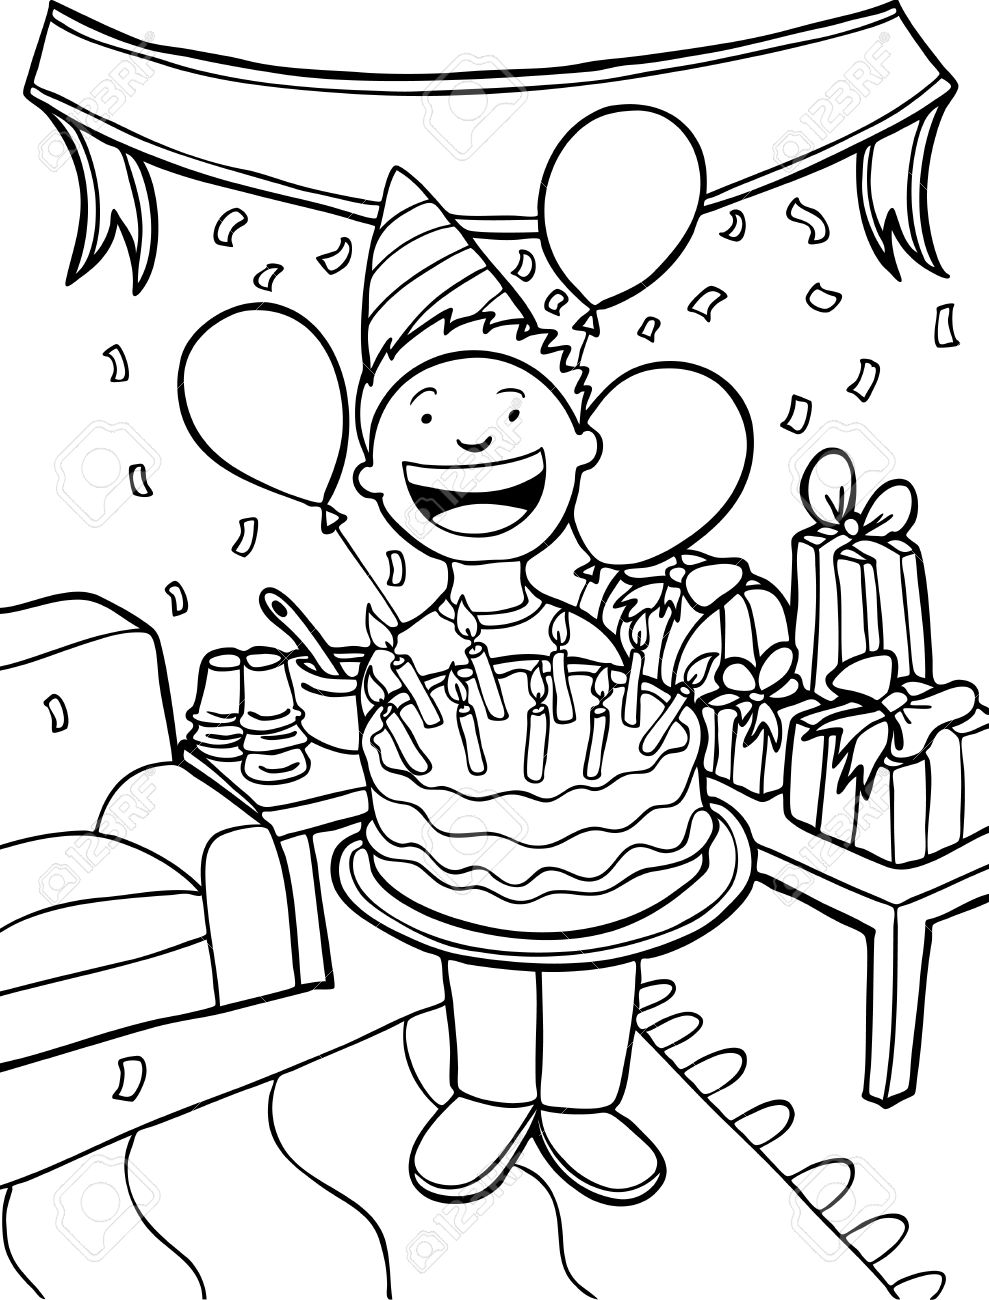 Party Line Drawing Birthday Party Line Art Child